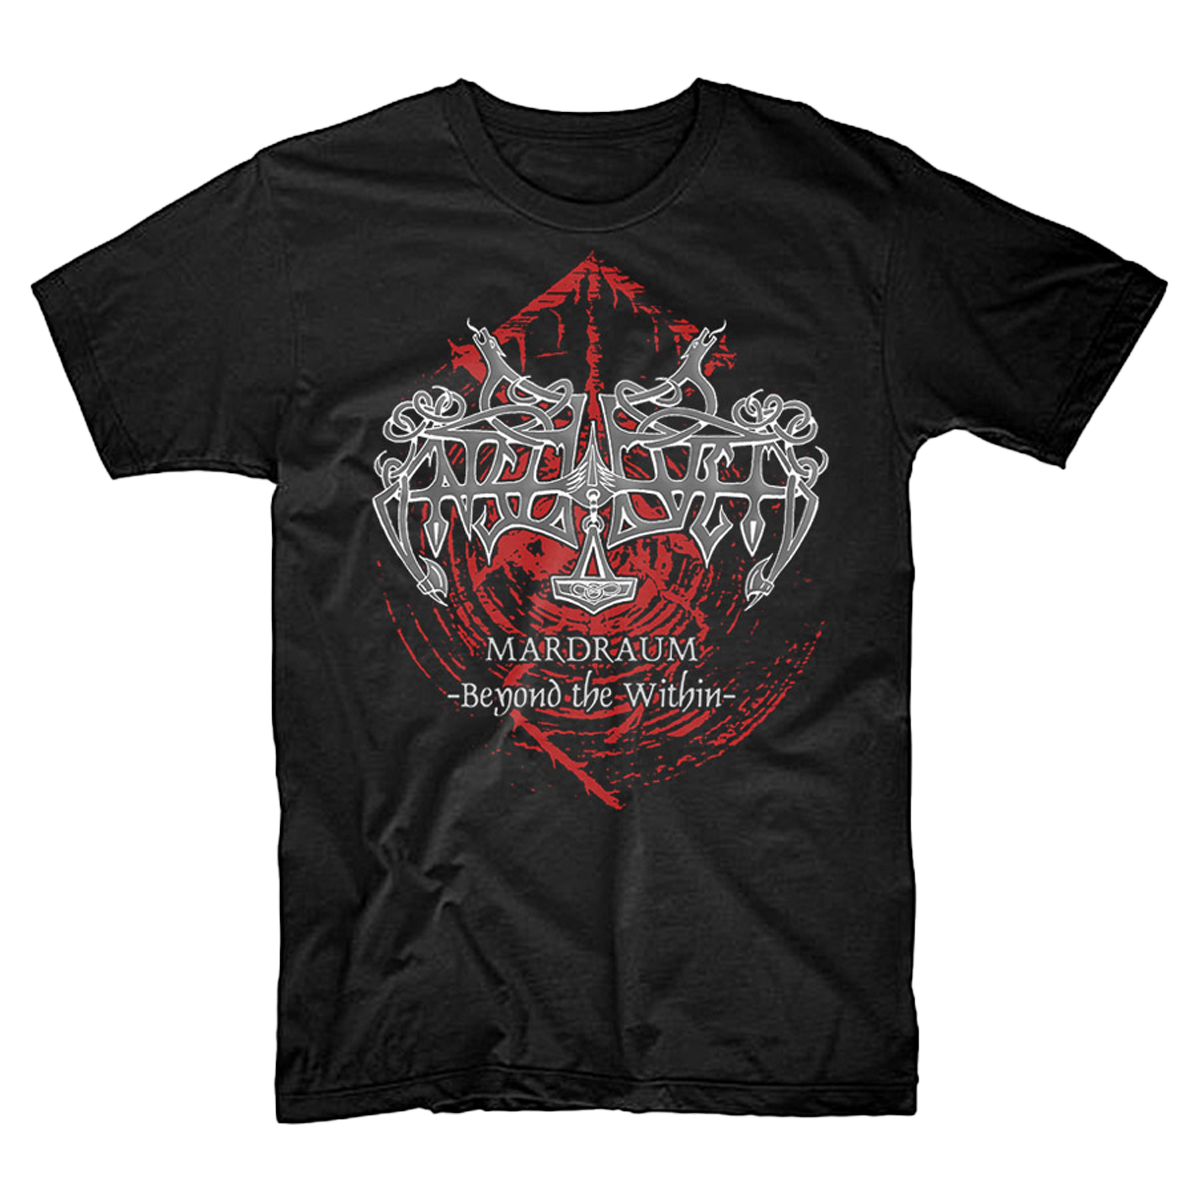 Enslaved - Mardraum T-Shirt